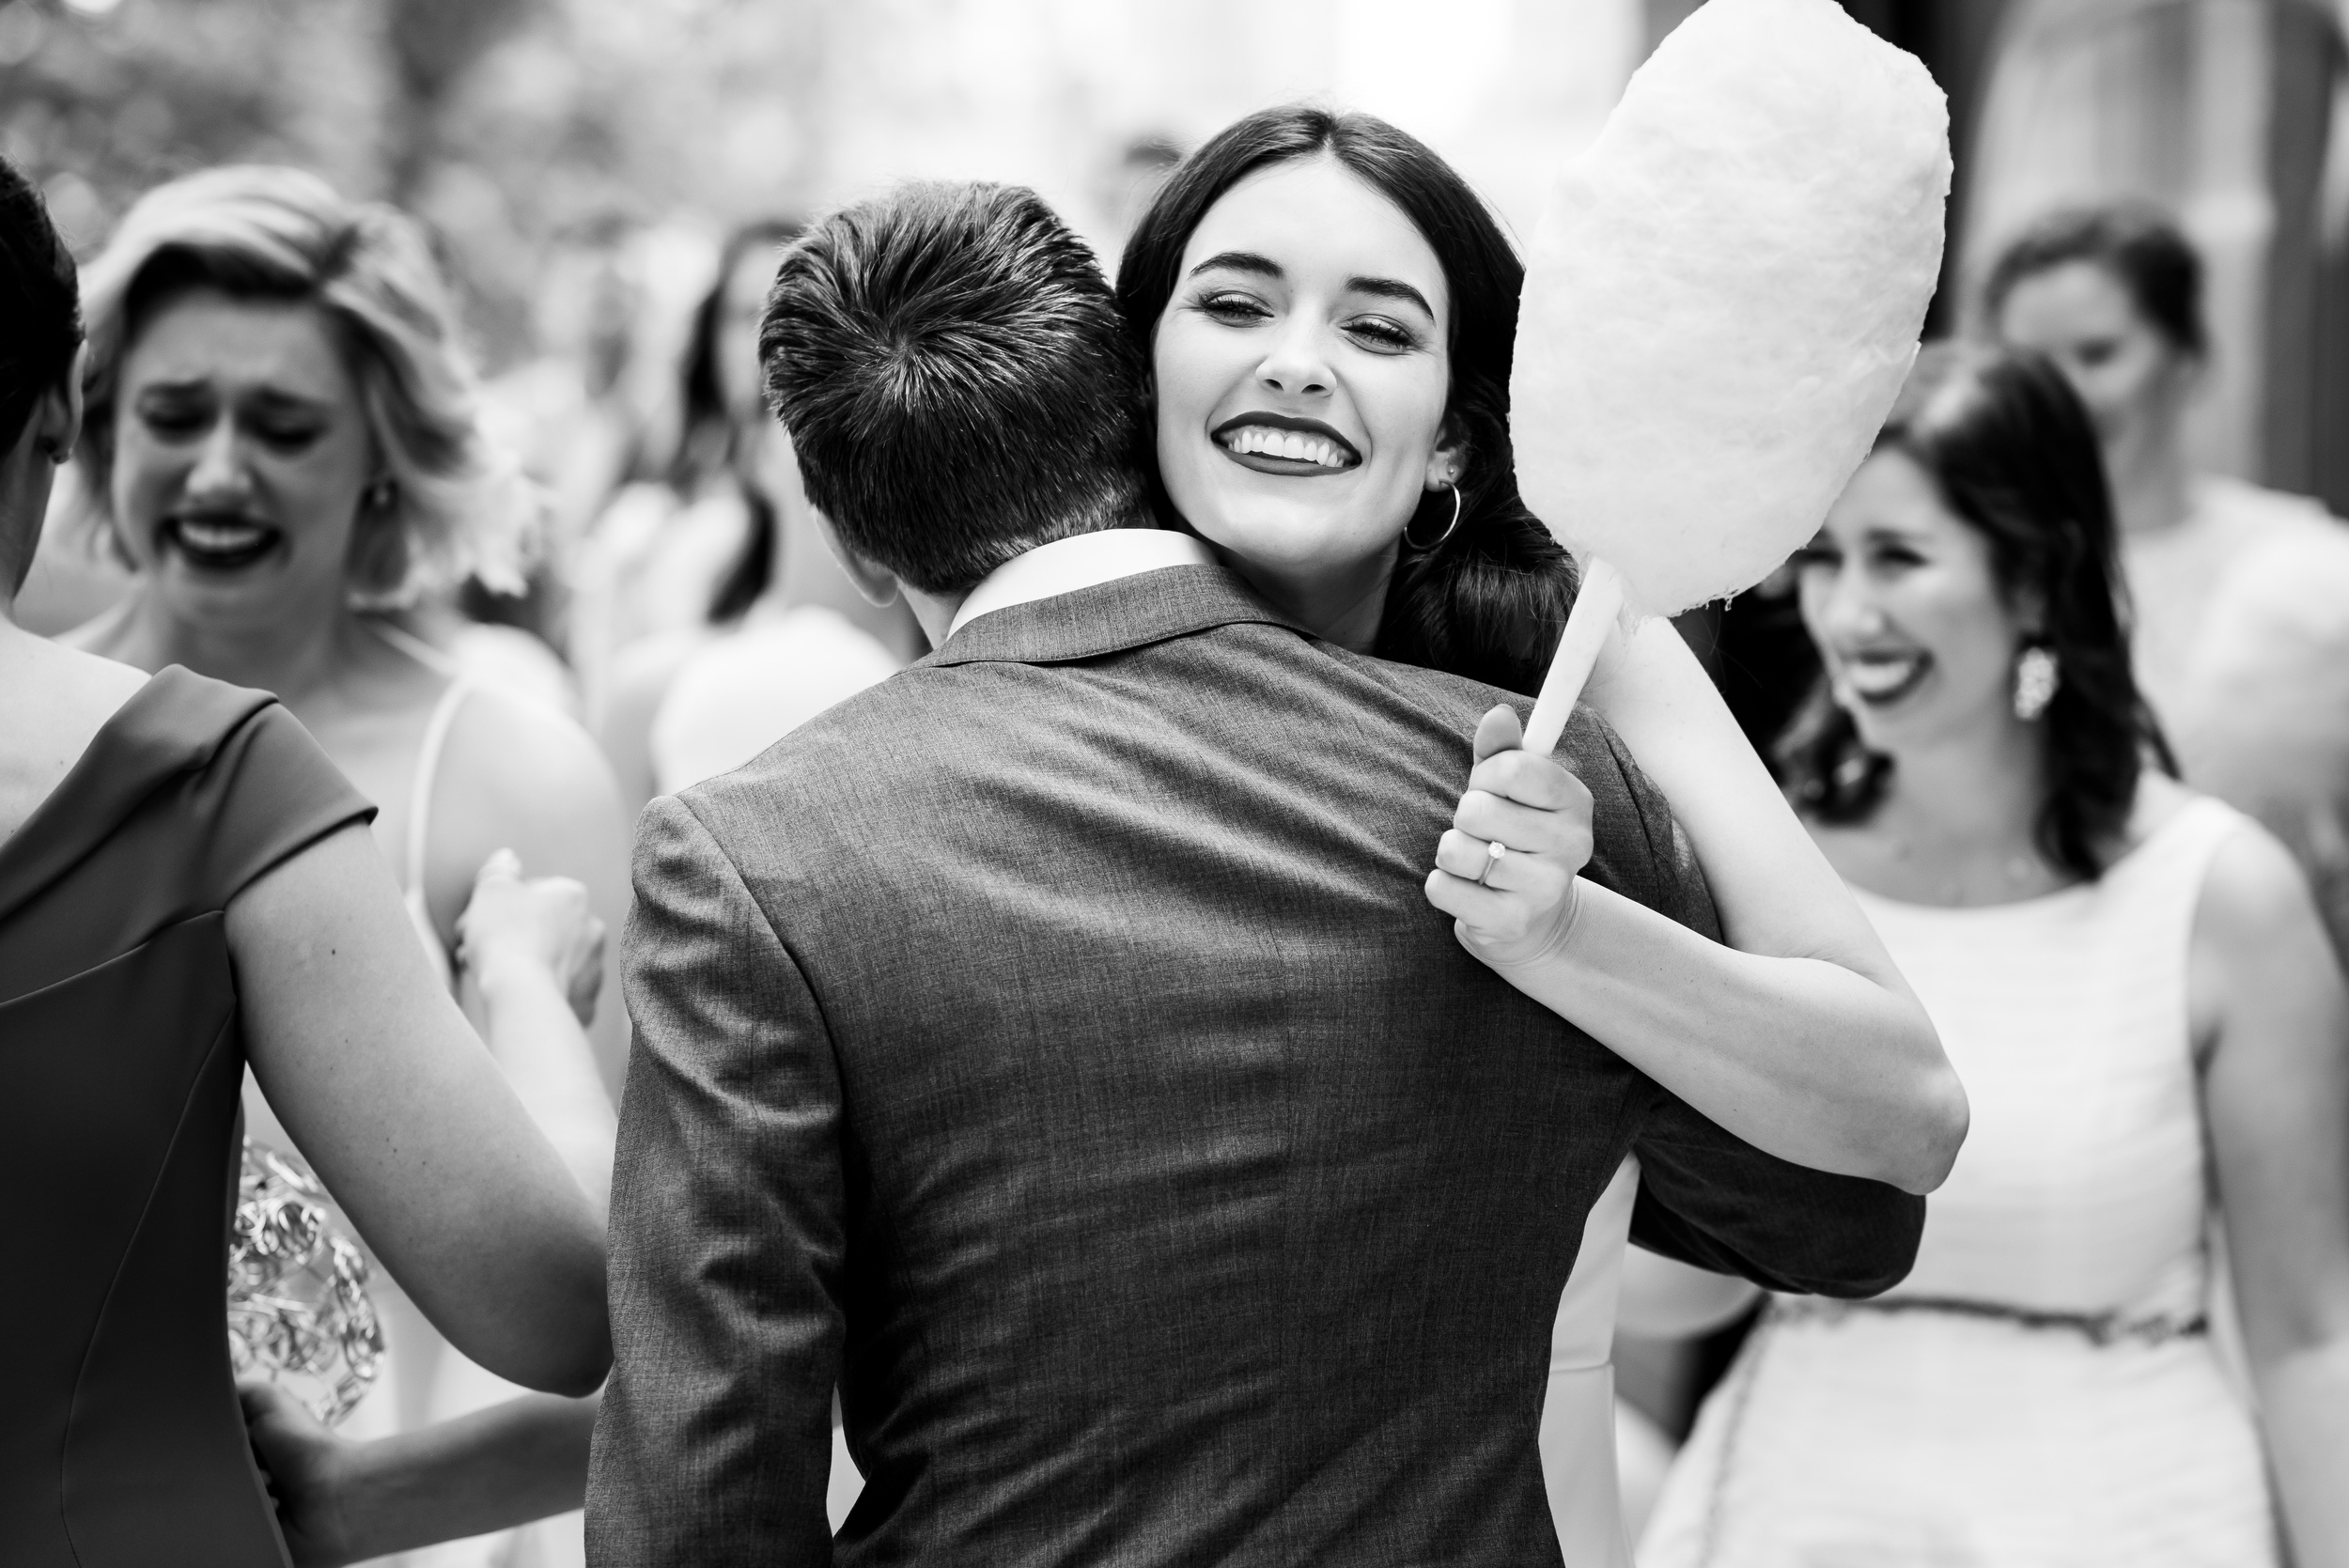 Wedding day moments for Carnivale Chicago wedding captured by J Brown Photography